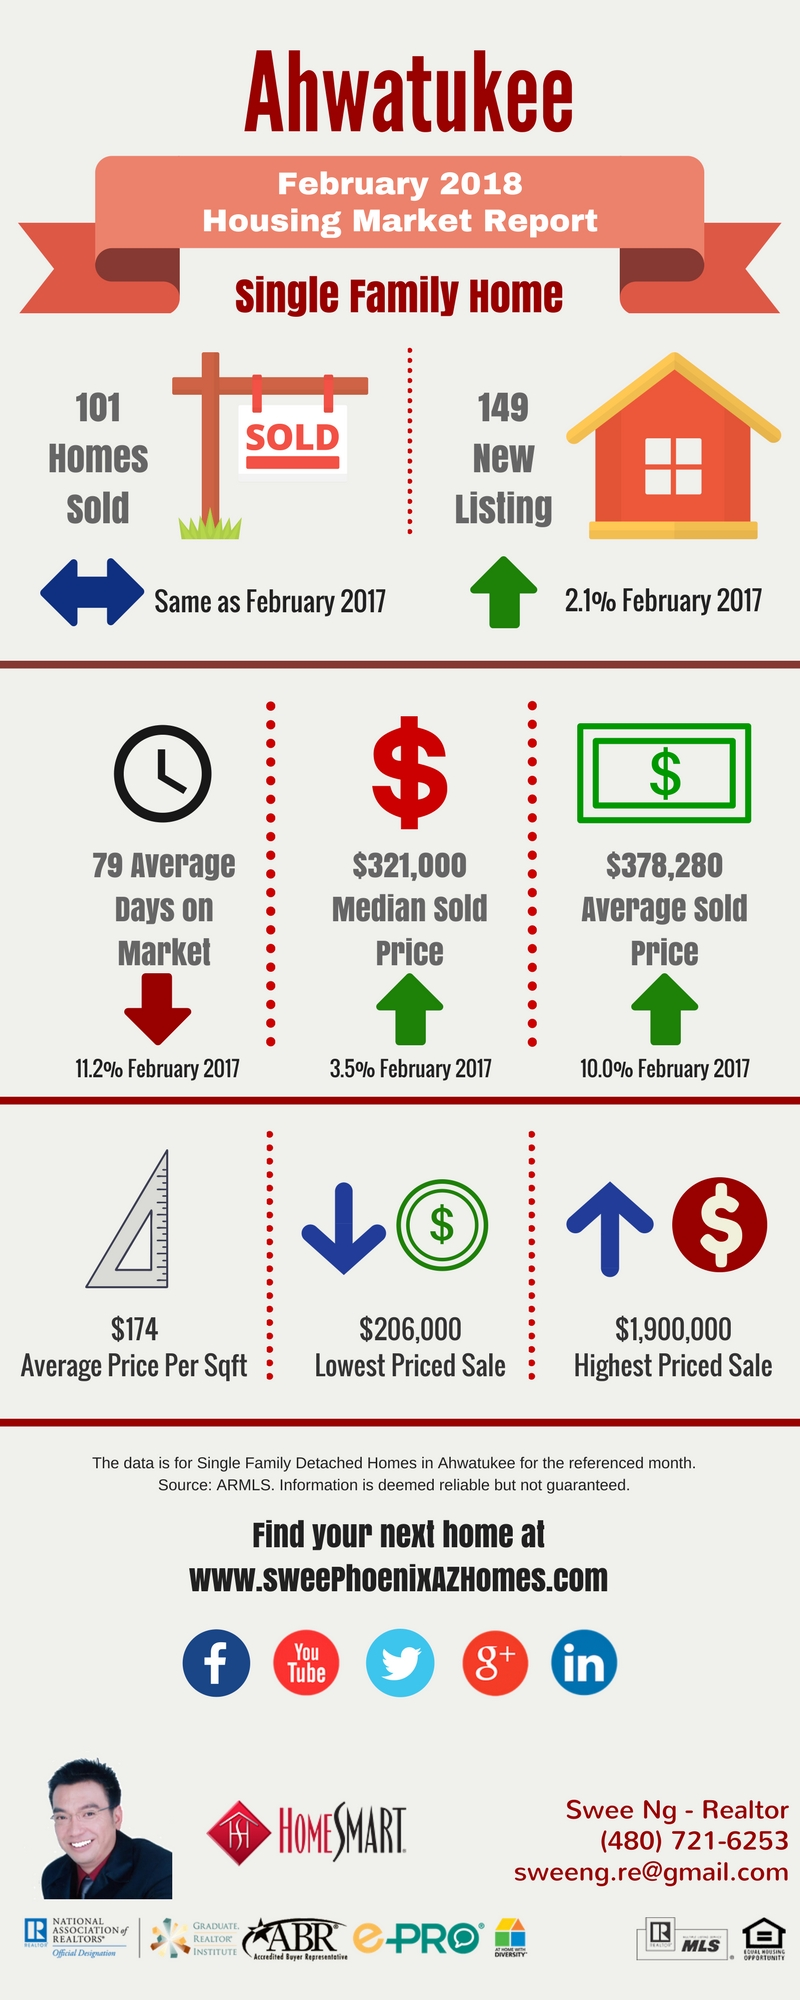 Ahwatukee Housing Market Trends Report February 2018, House Value, Real Estate and Statistic by Swee Ng